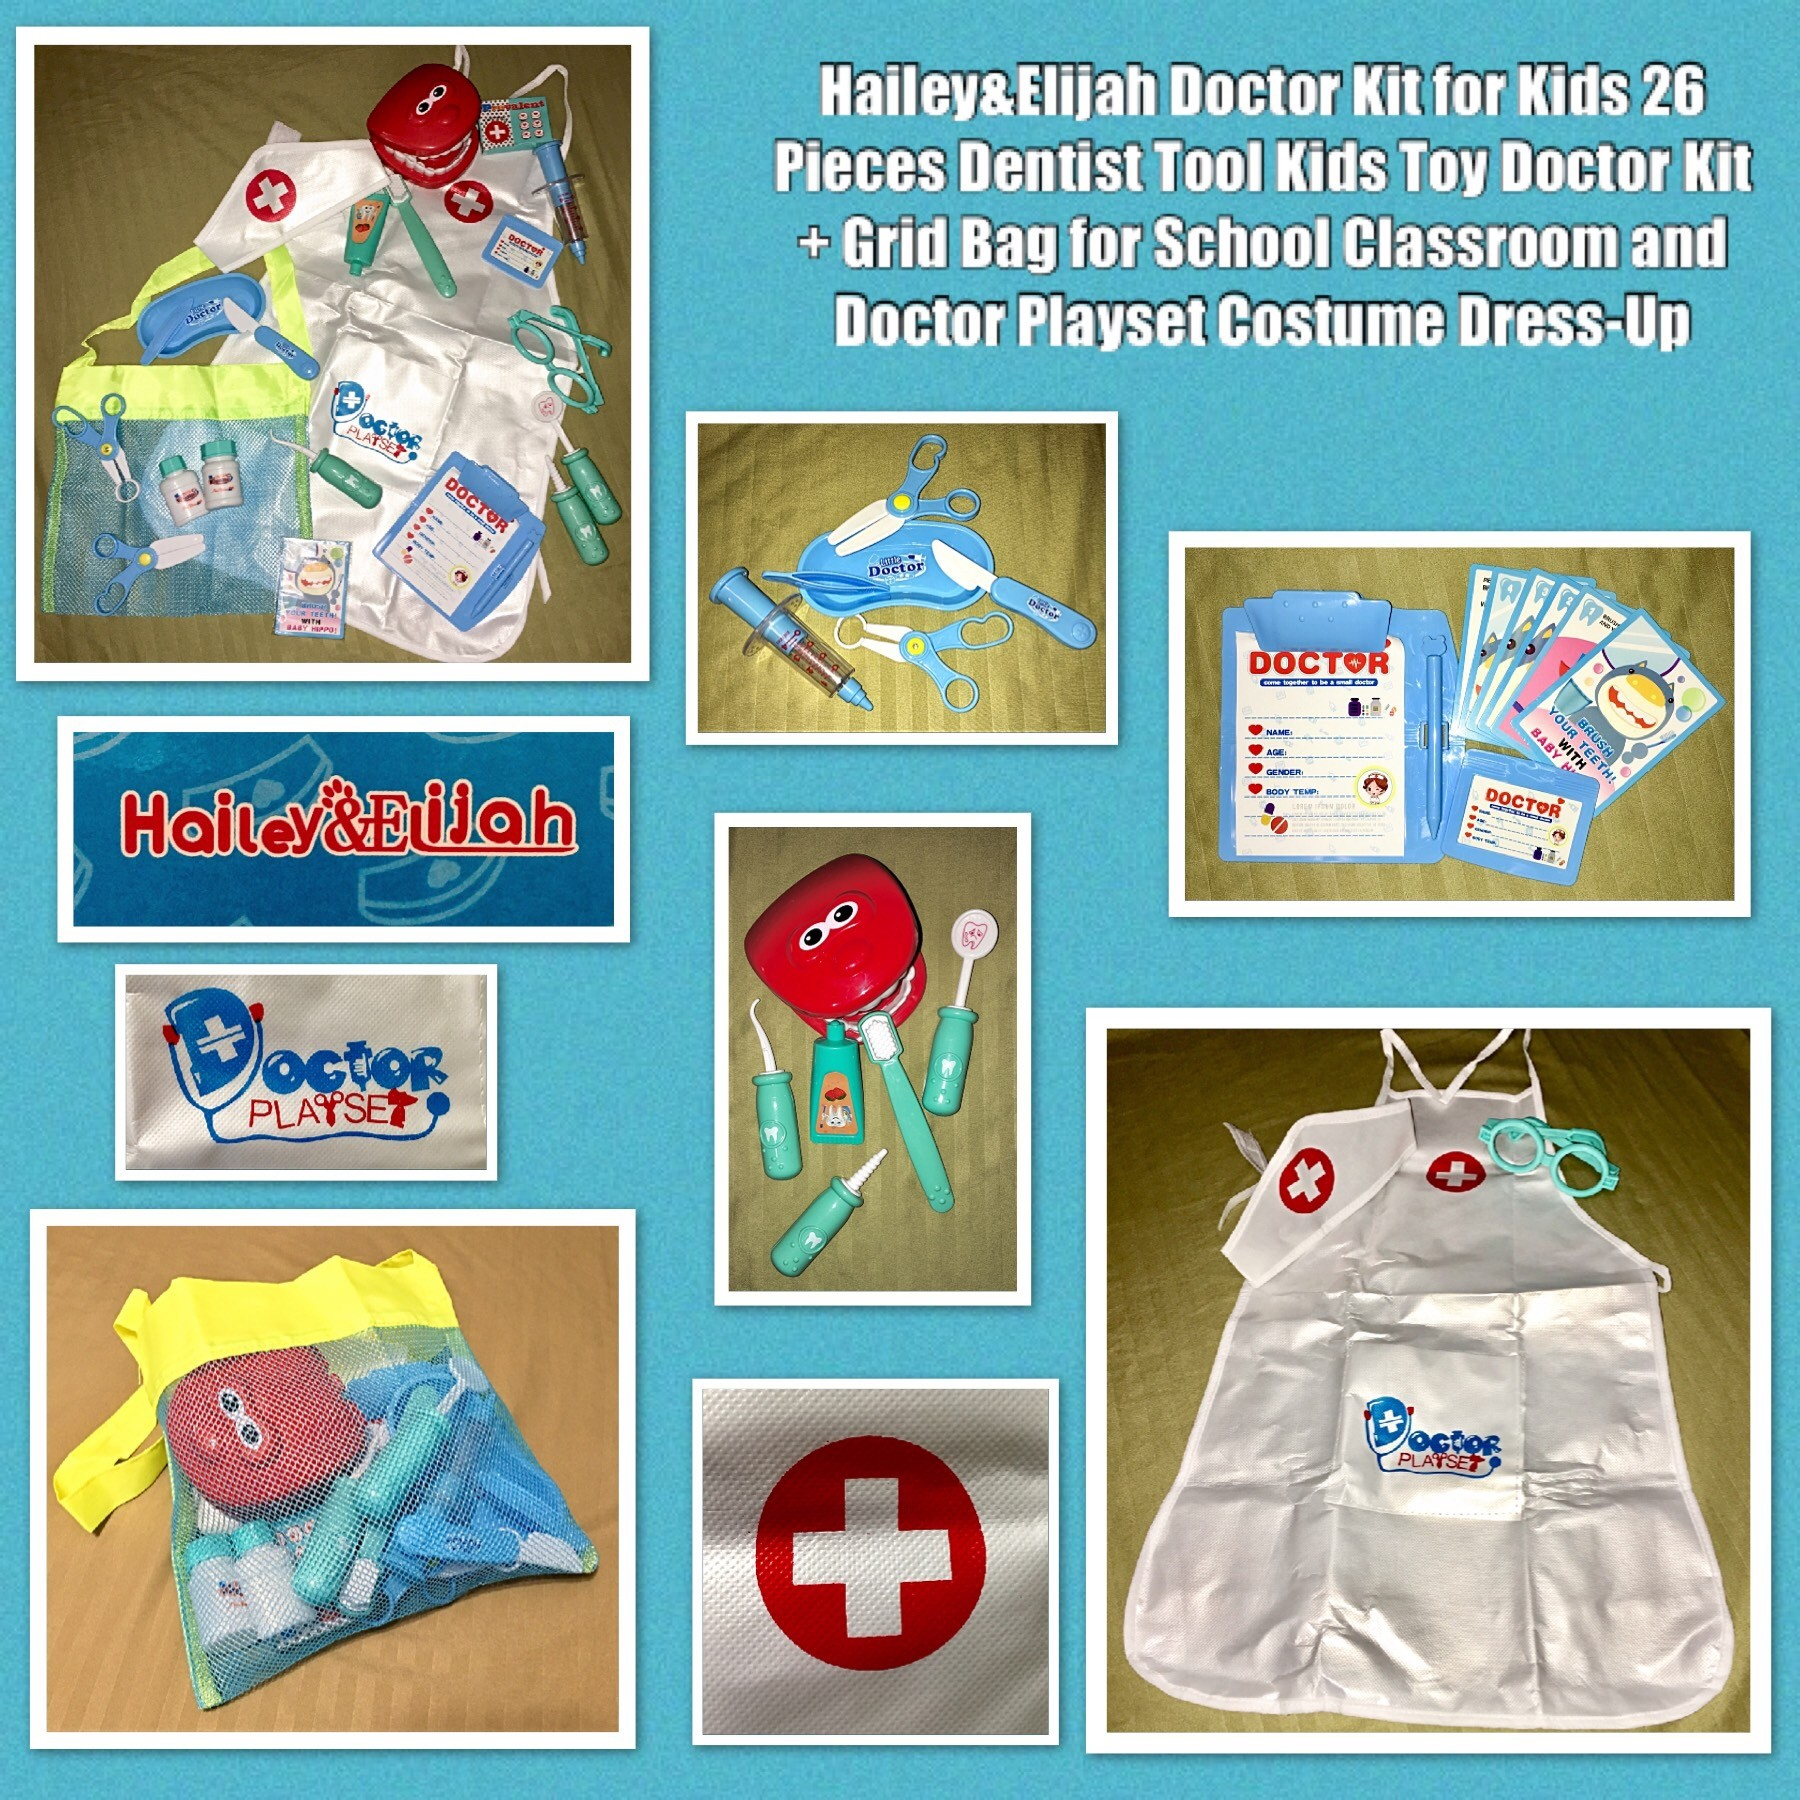 Hailey & Elijah Doctor Kit for Kids - 26 Pieces Dentist Tool Kids Toy Doctor Kit + Grid Bag for School Classroom and Doctor Playset Costume Dress-Up